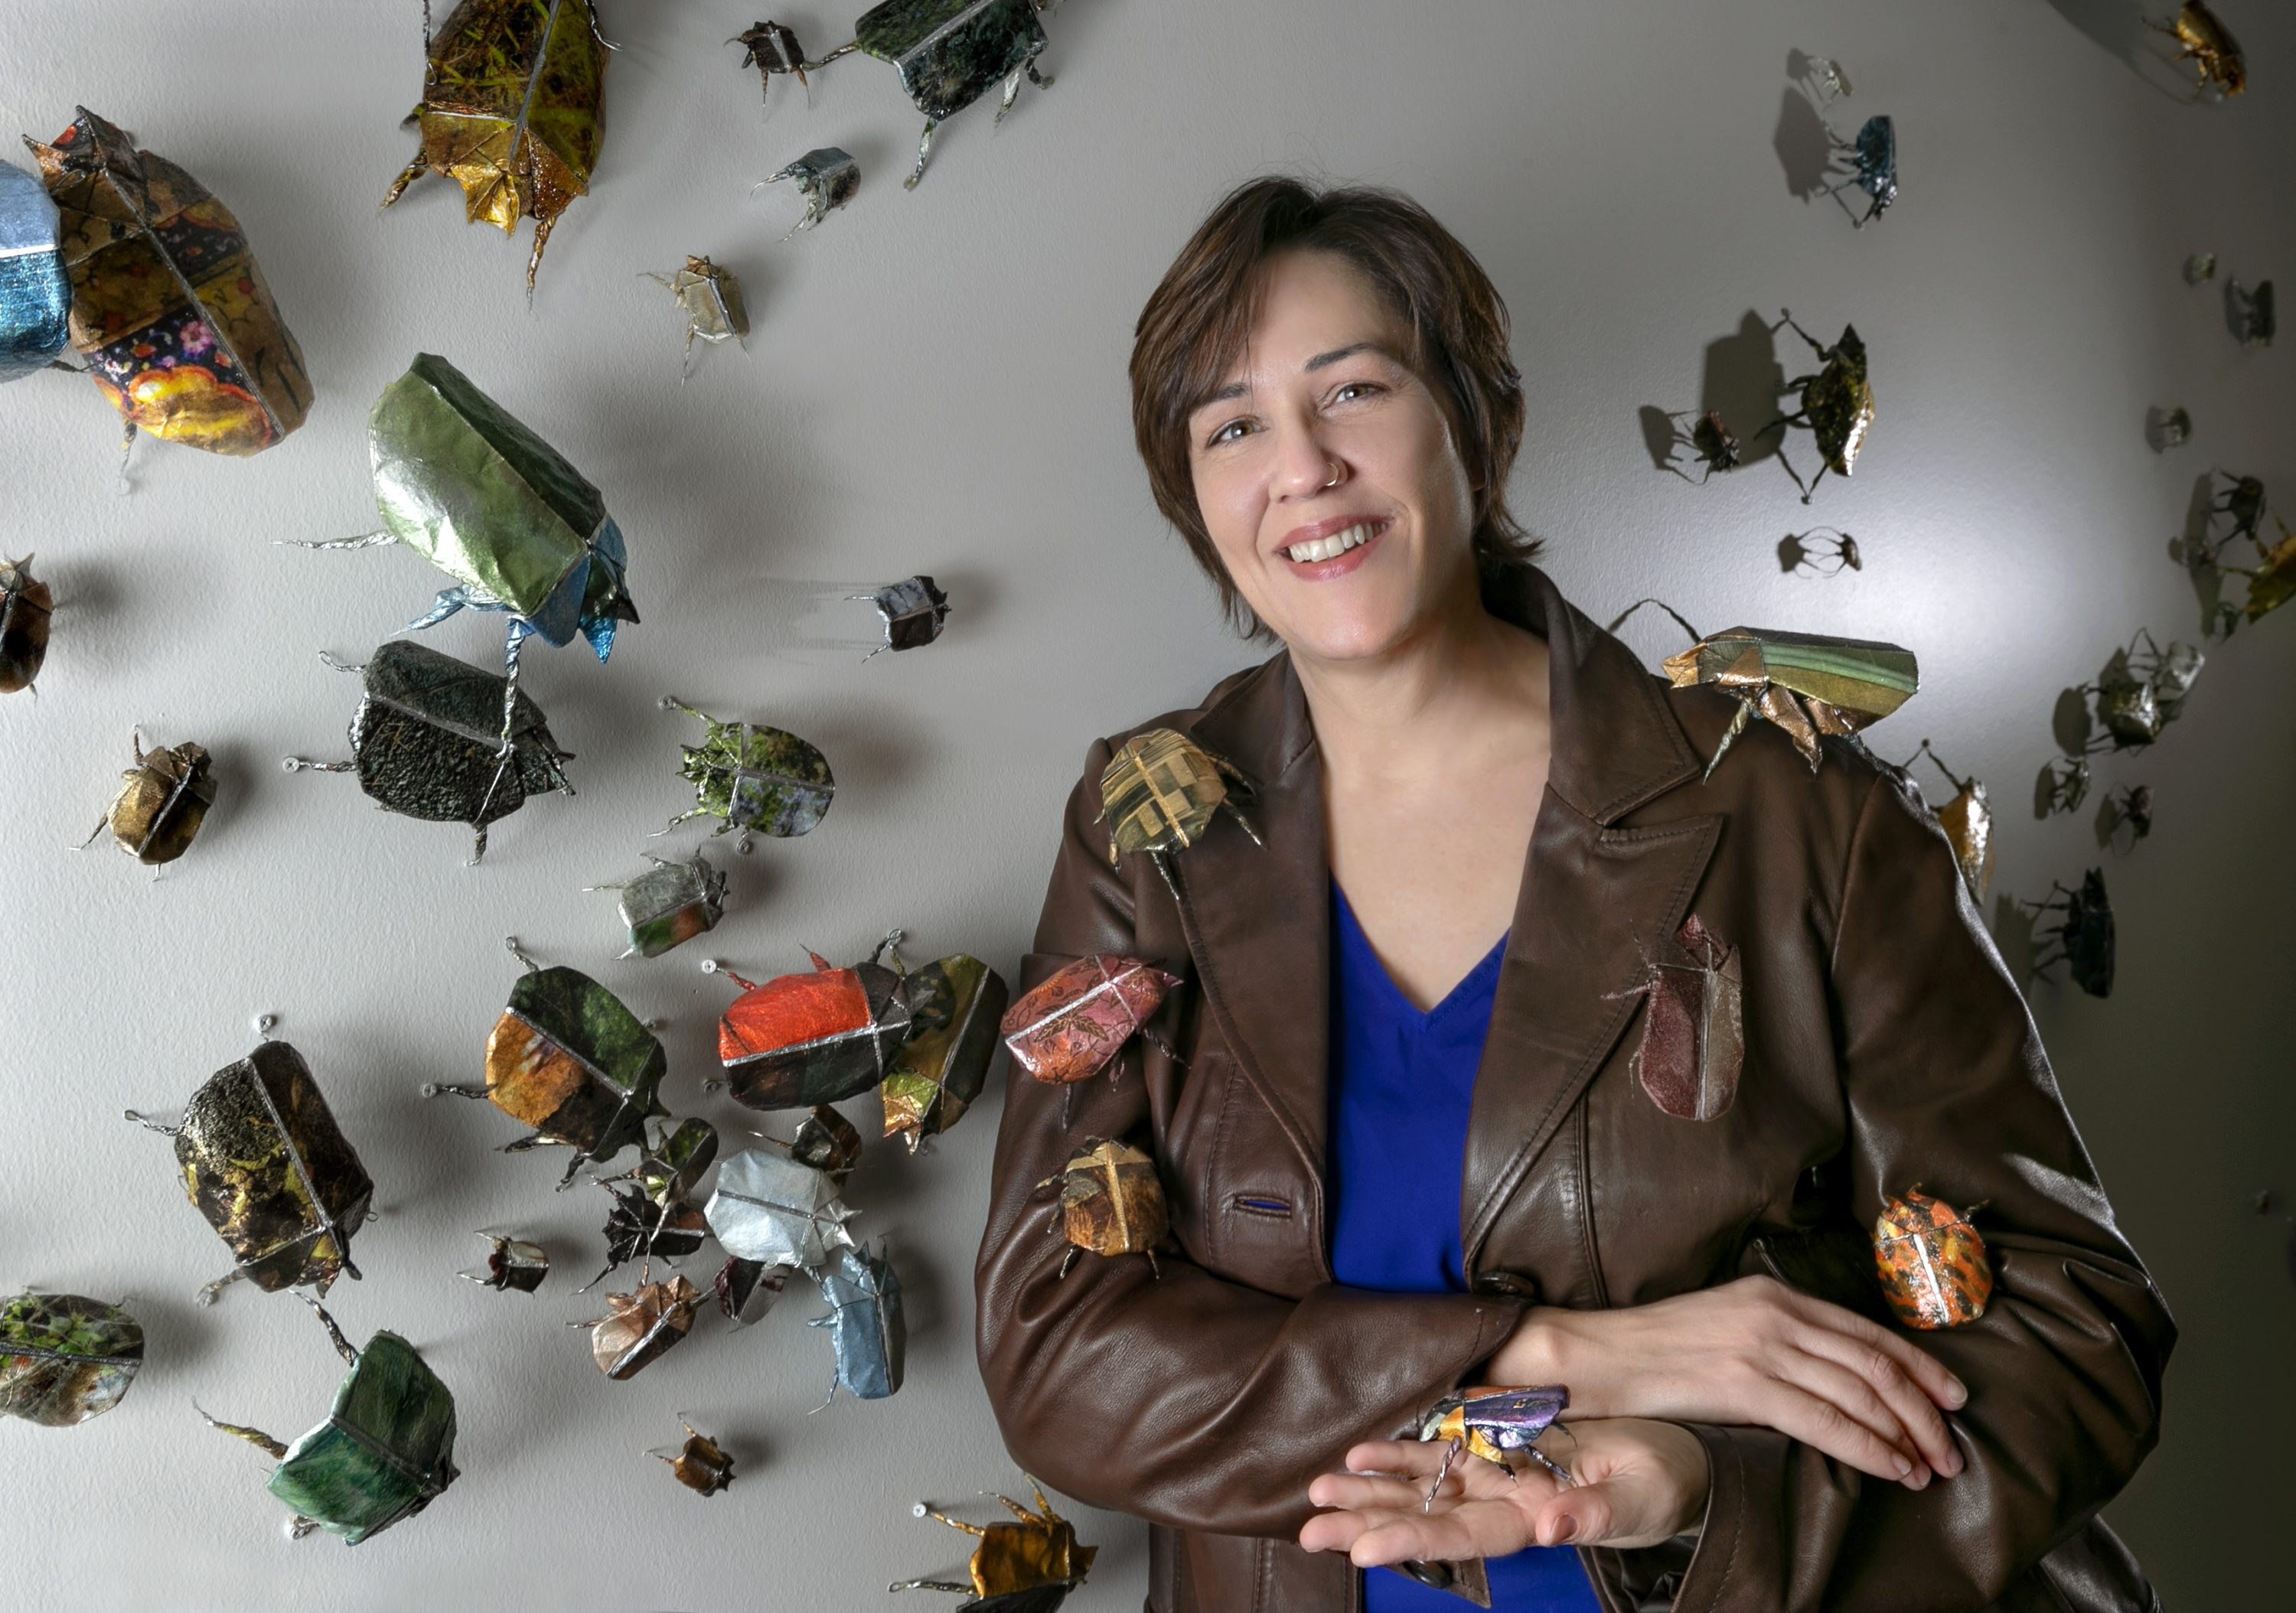 A light-skinned woman with short brown hair stands in front of a white wall to which paper beetles, sculpted out of photographs, are affixed. The woman holds a beetle in her open palm, while others are arranged atop her brown leather jacket. She smiles slightly at the camera while leaning against the wall.